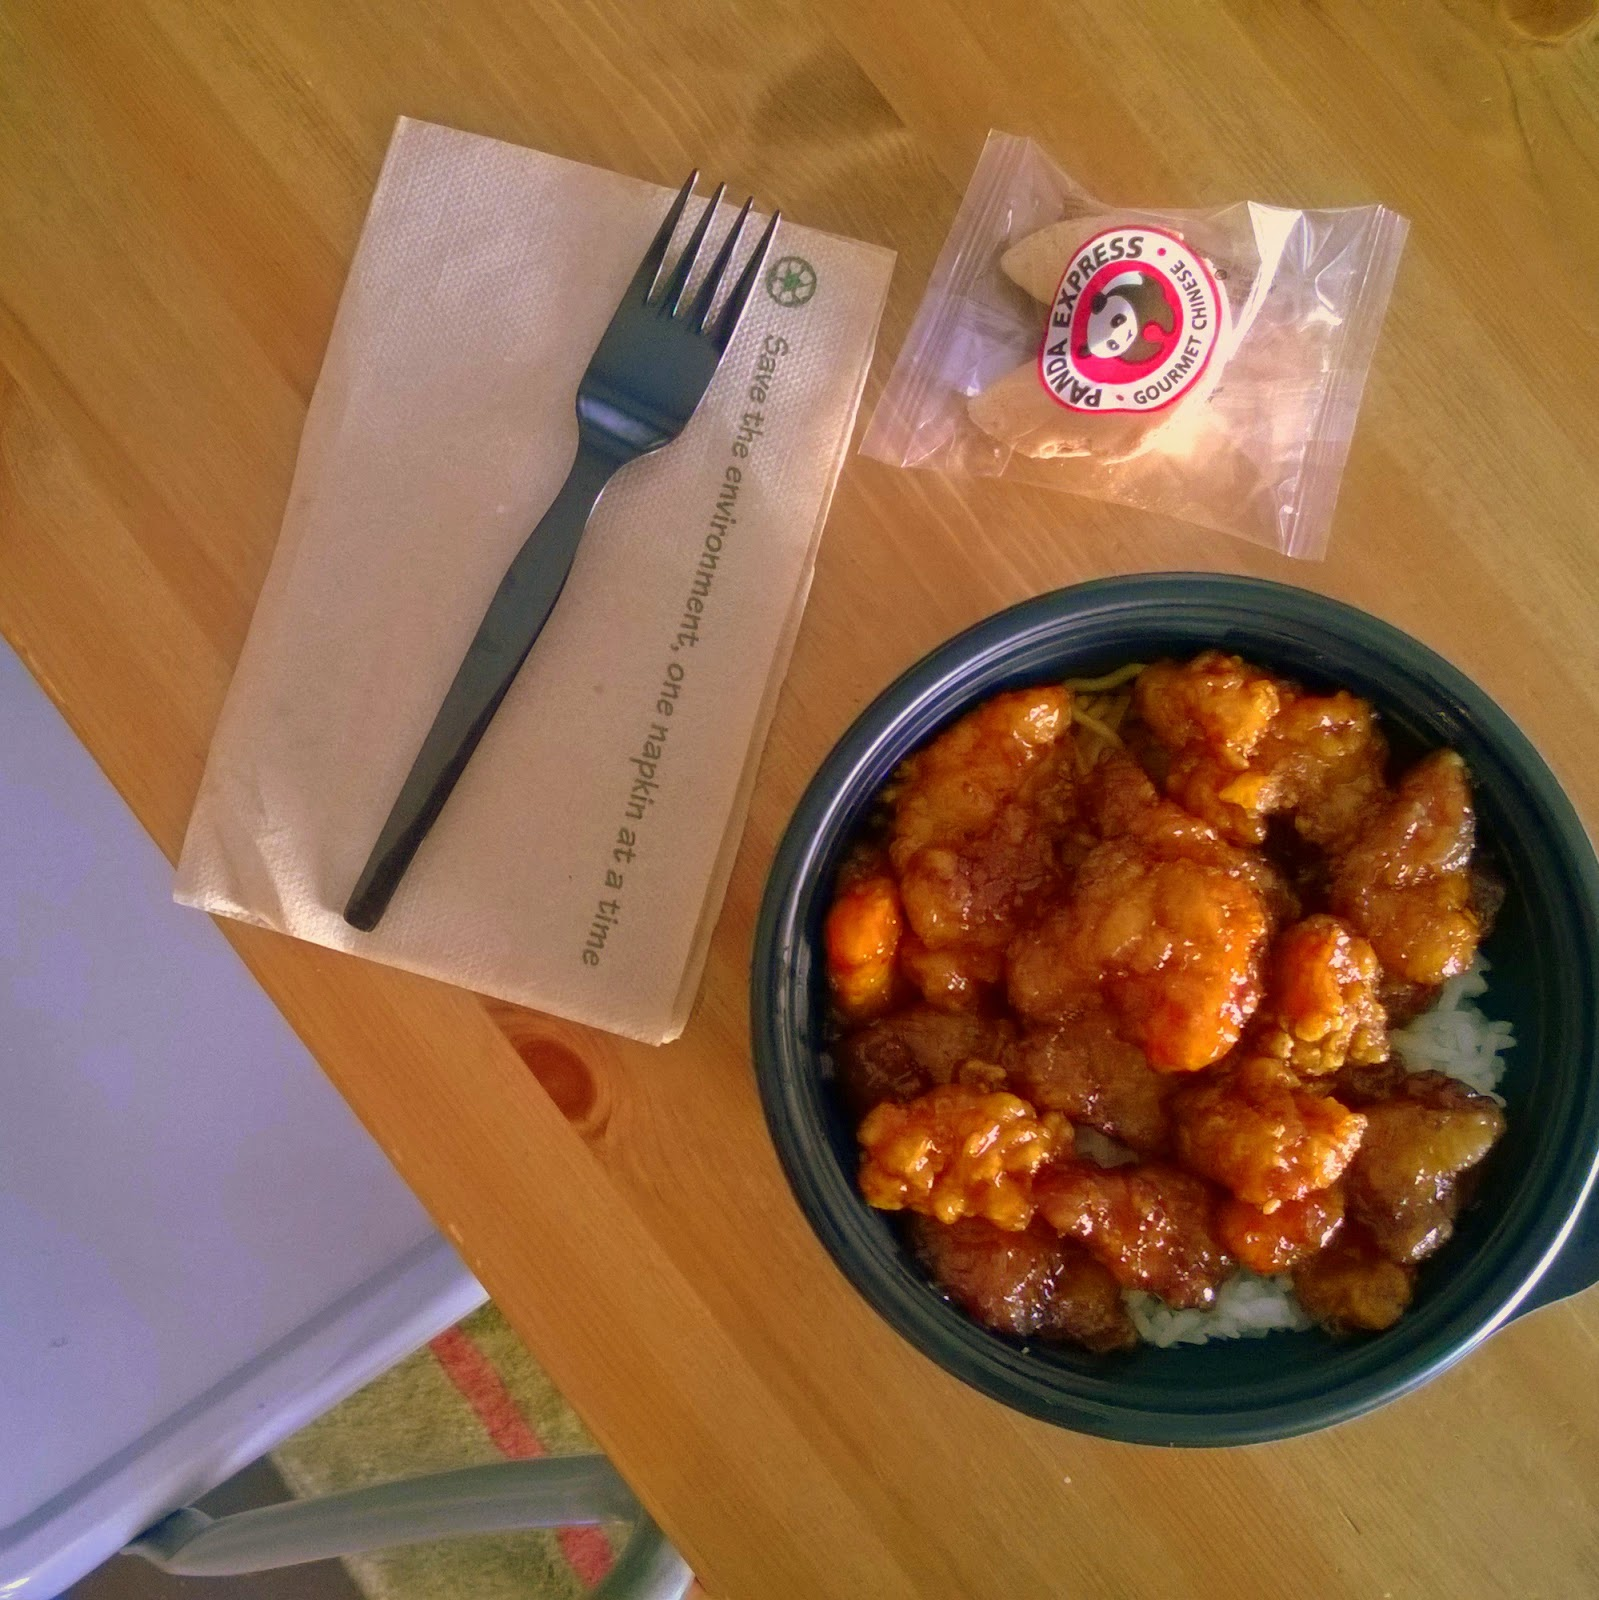 Panda Express orange chicken bowl